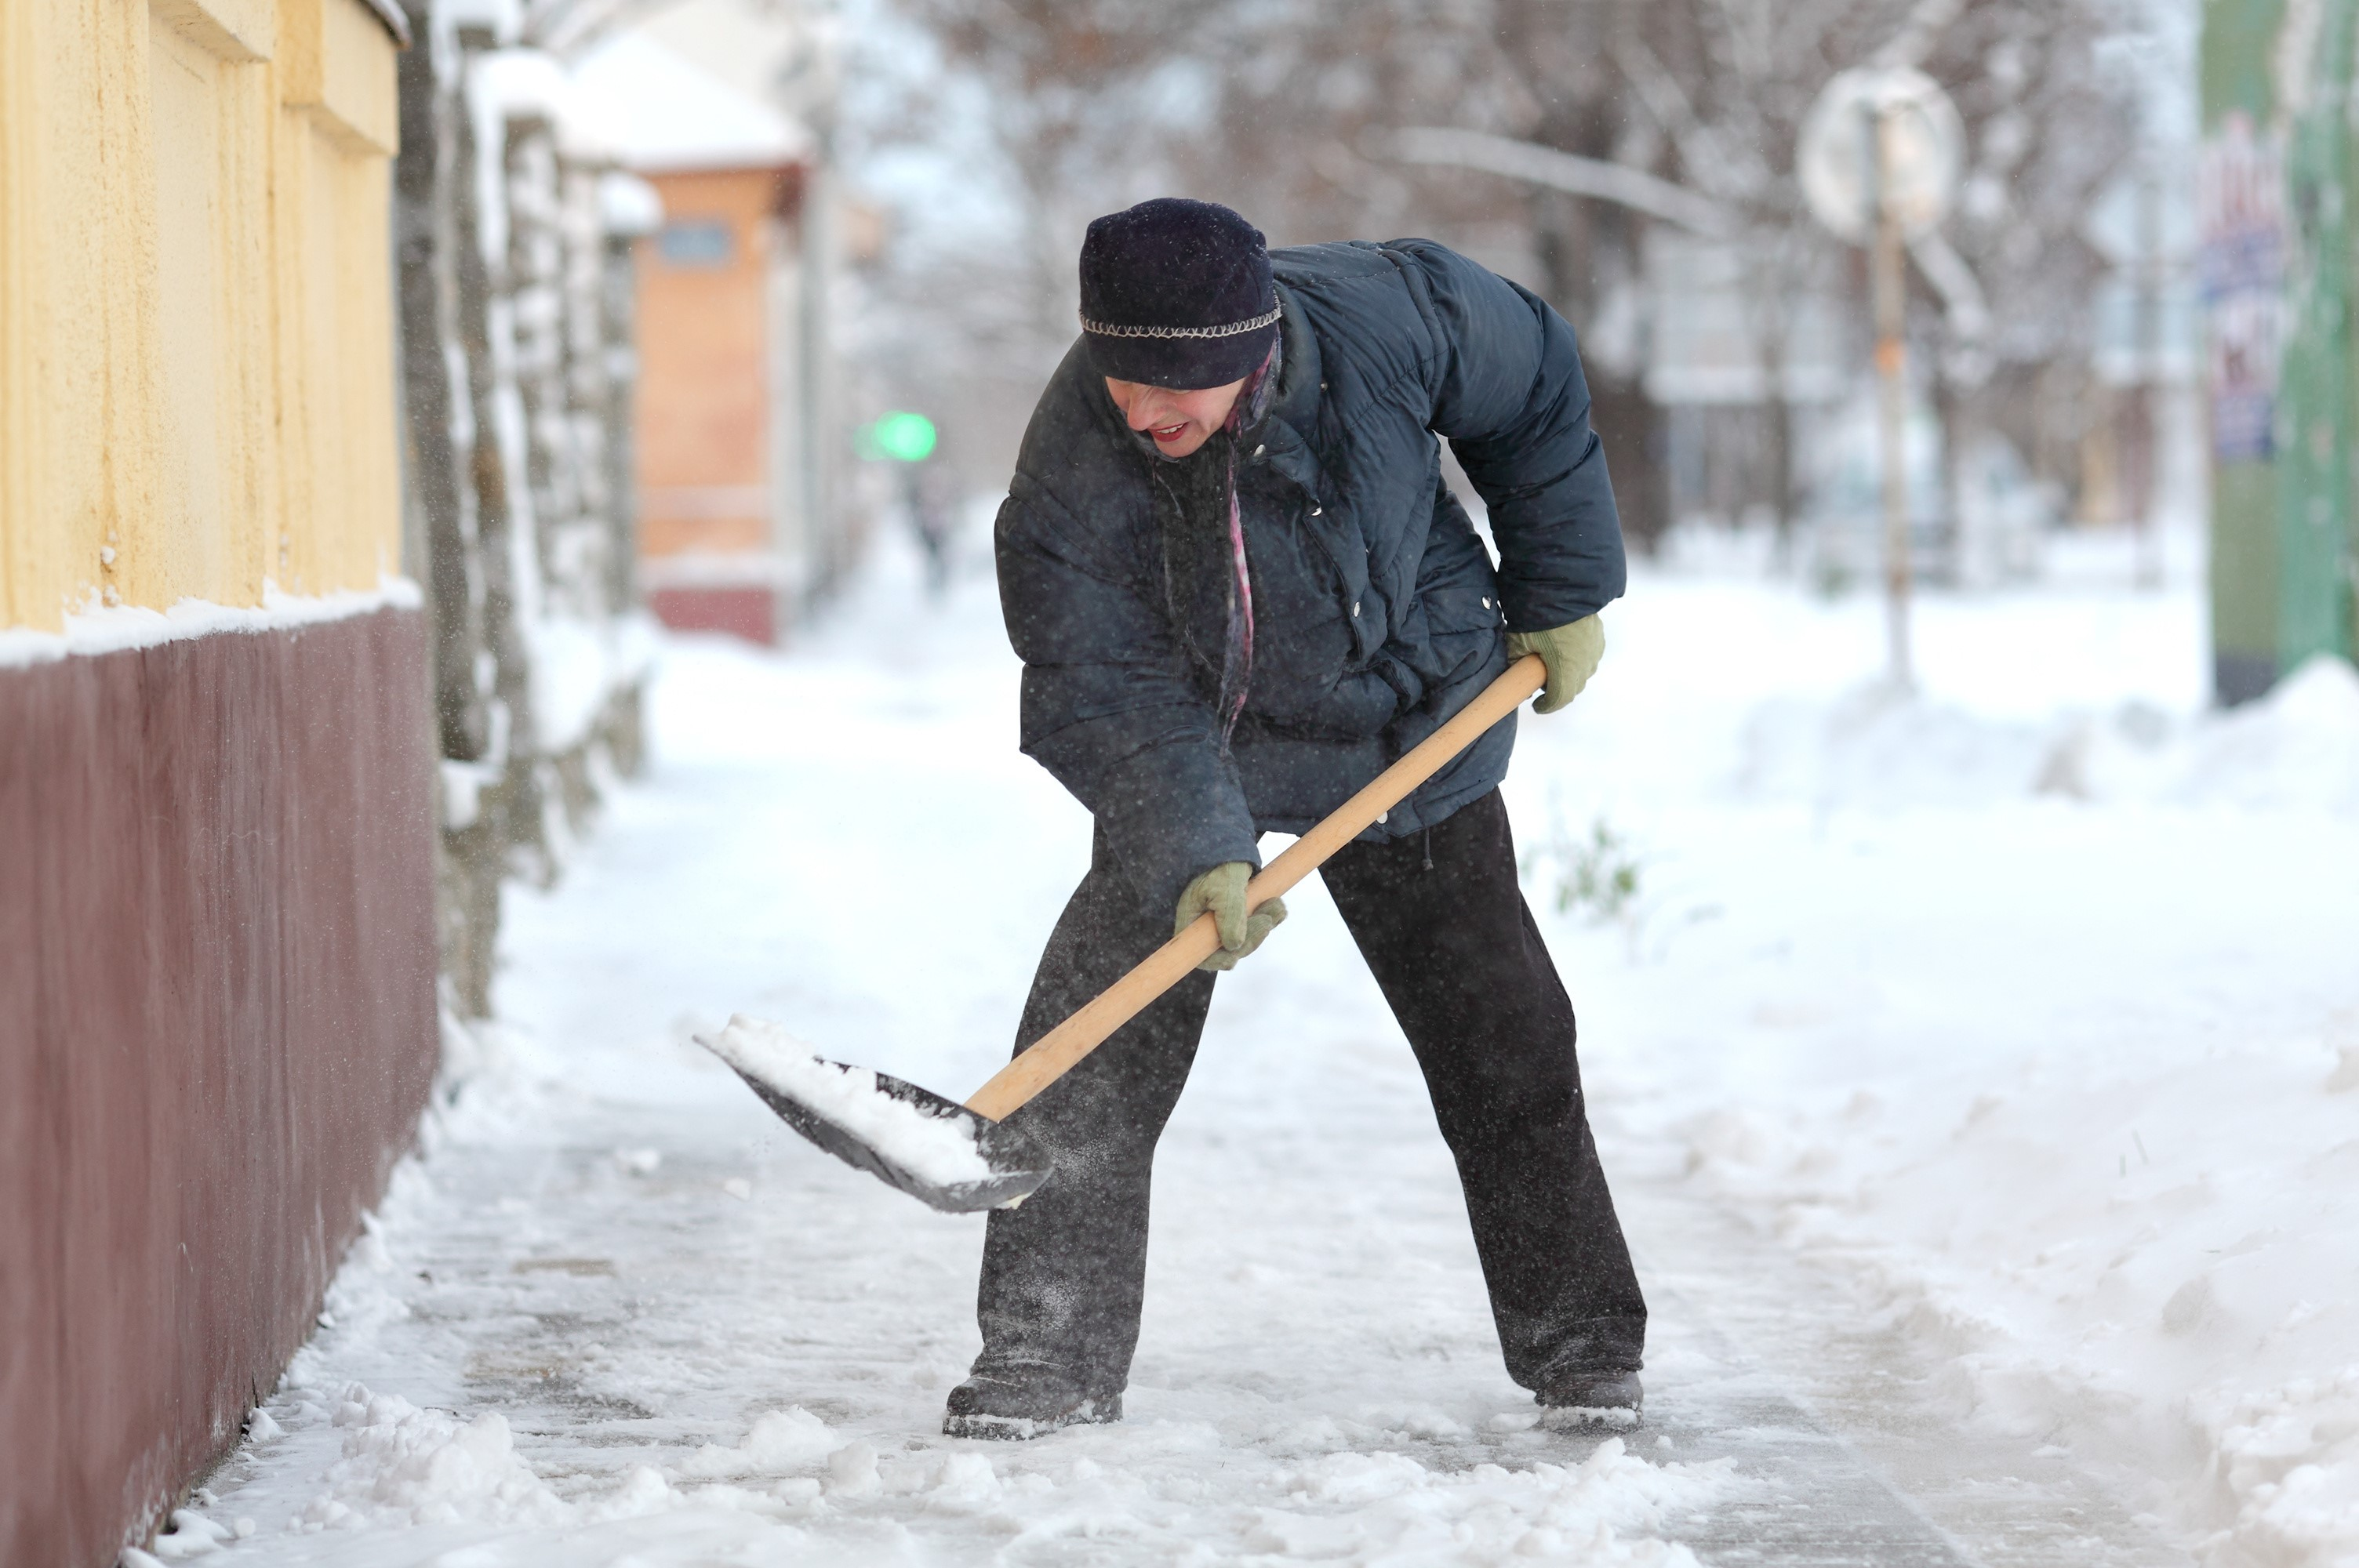 Shoveling Snow? Be Careful!